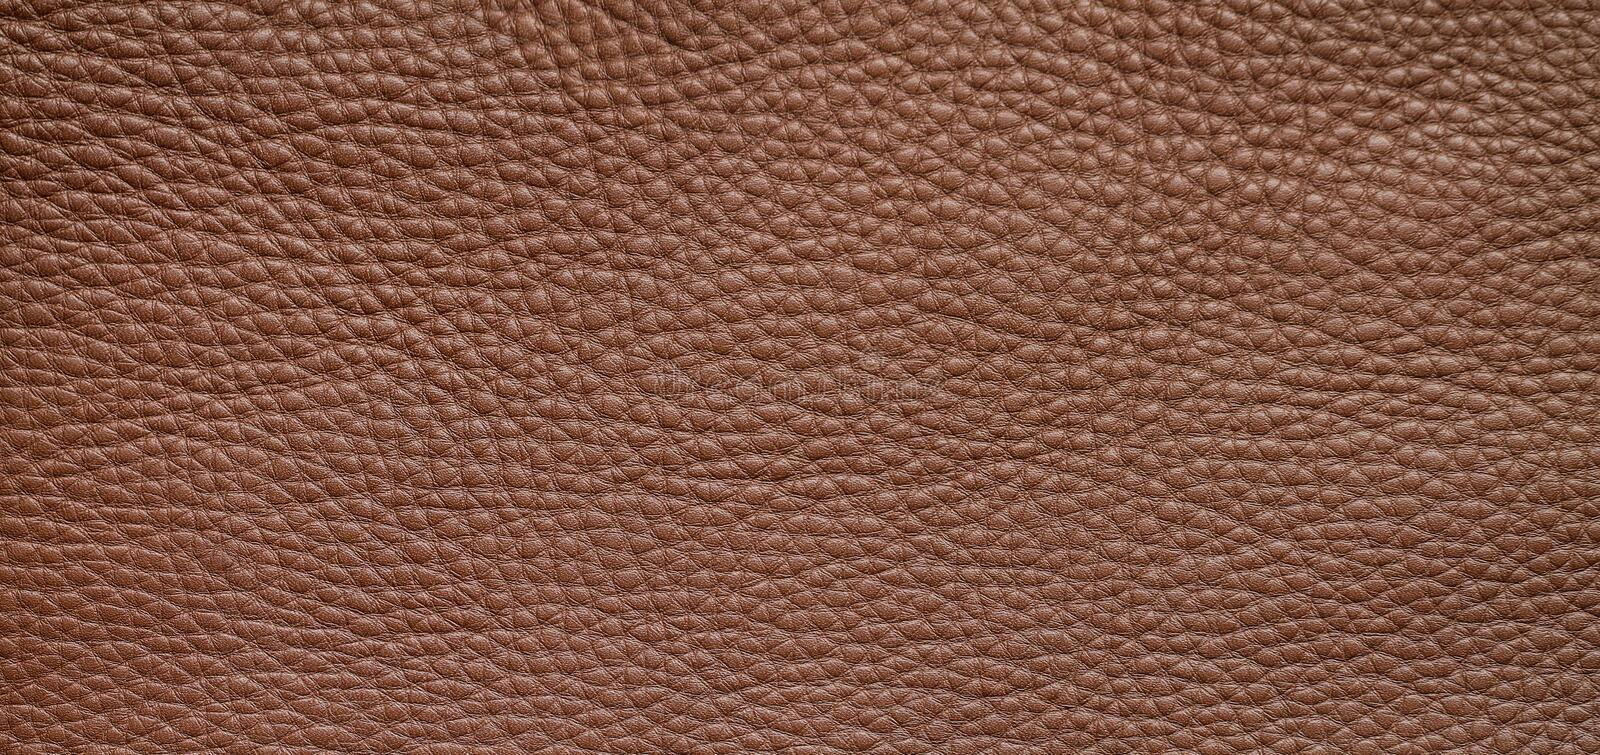 Natural background with brown leather of a rough texture. Abstract leather texture royalty free stock photos